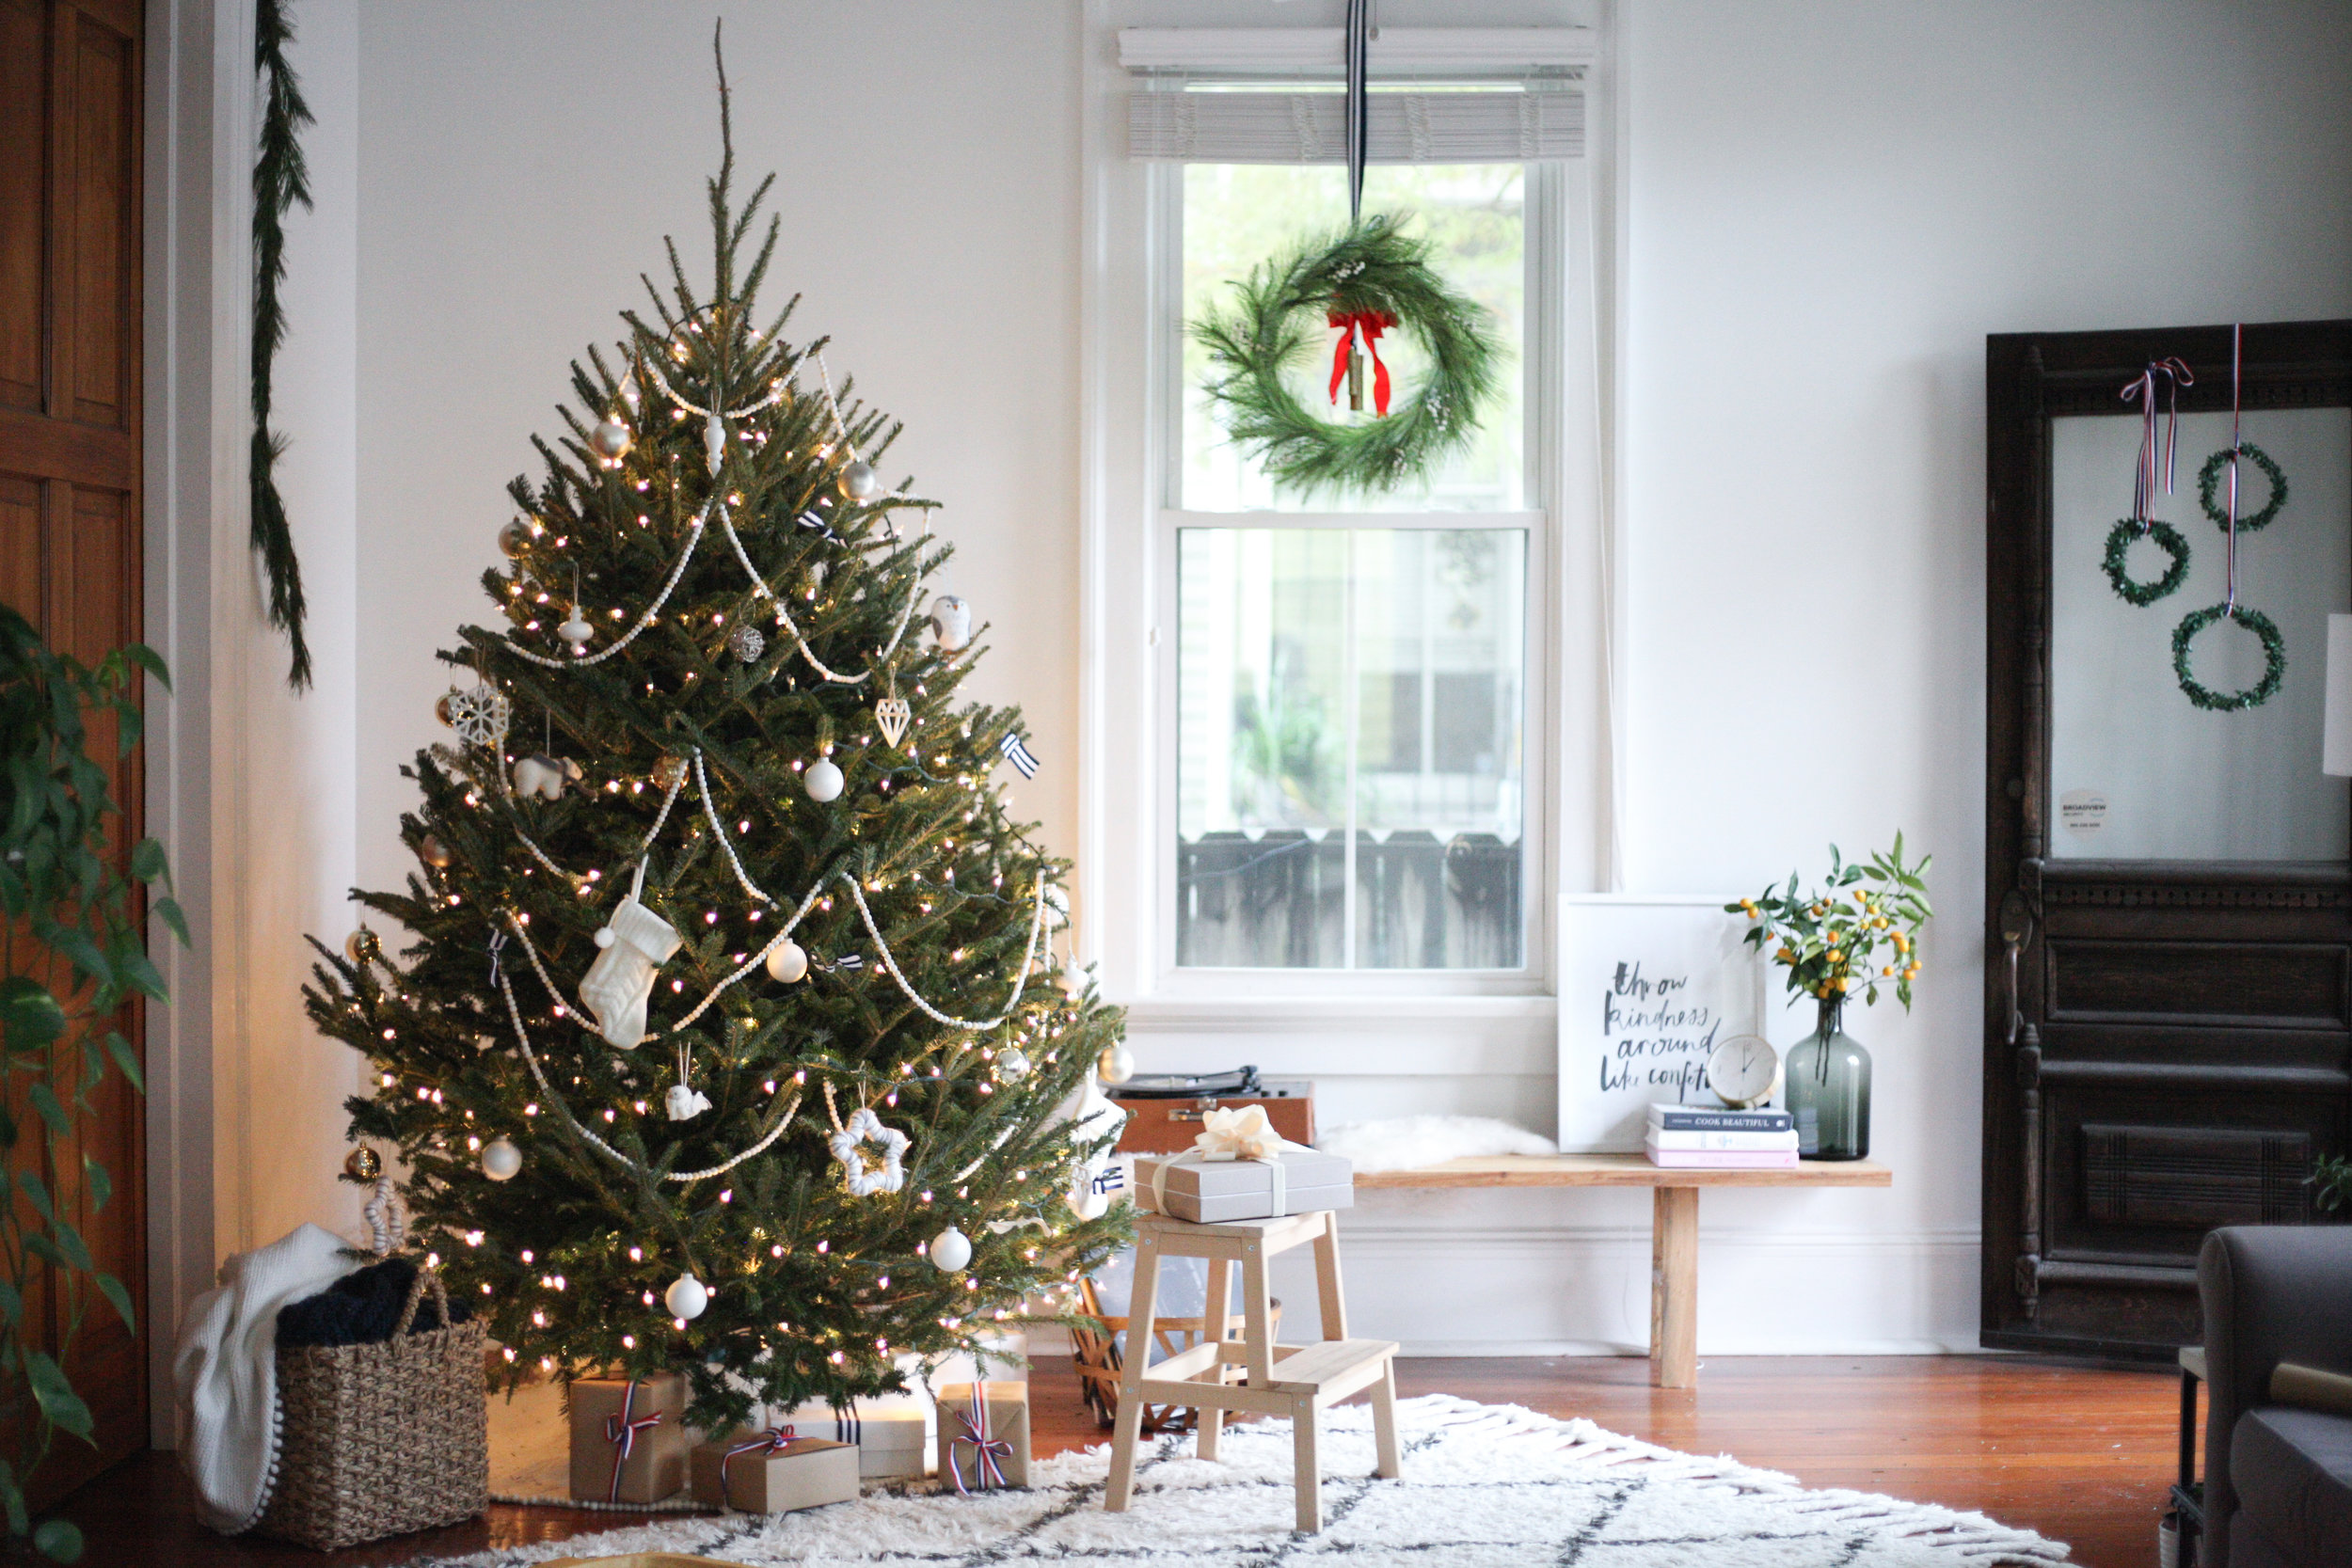 holiday cheer - fresh ways to deck the halls.